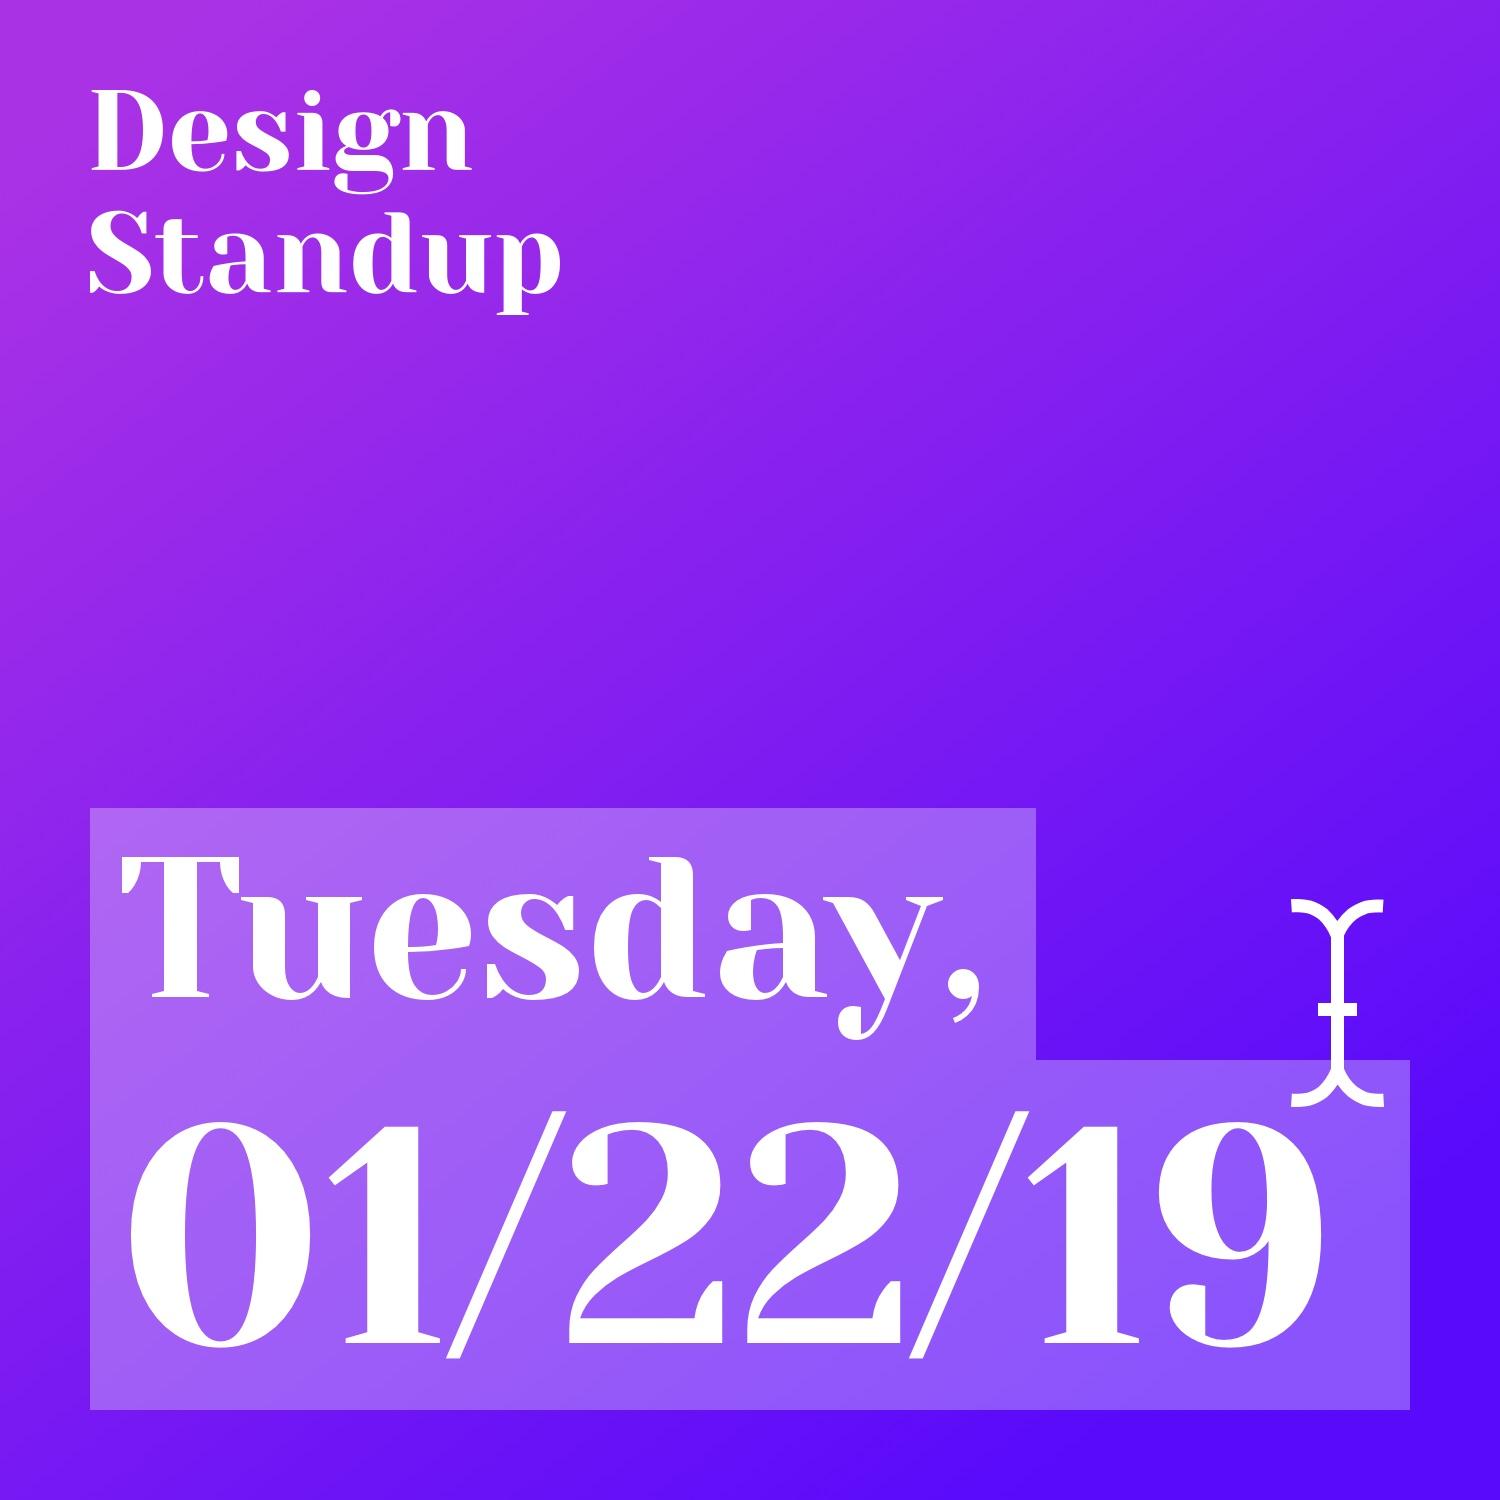 #007: [Part 1] The State of UX in 2019 by Fabricio Teixeira and Caio Braga of UX Collective